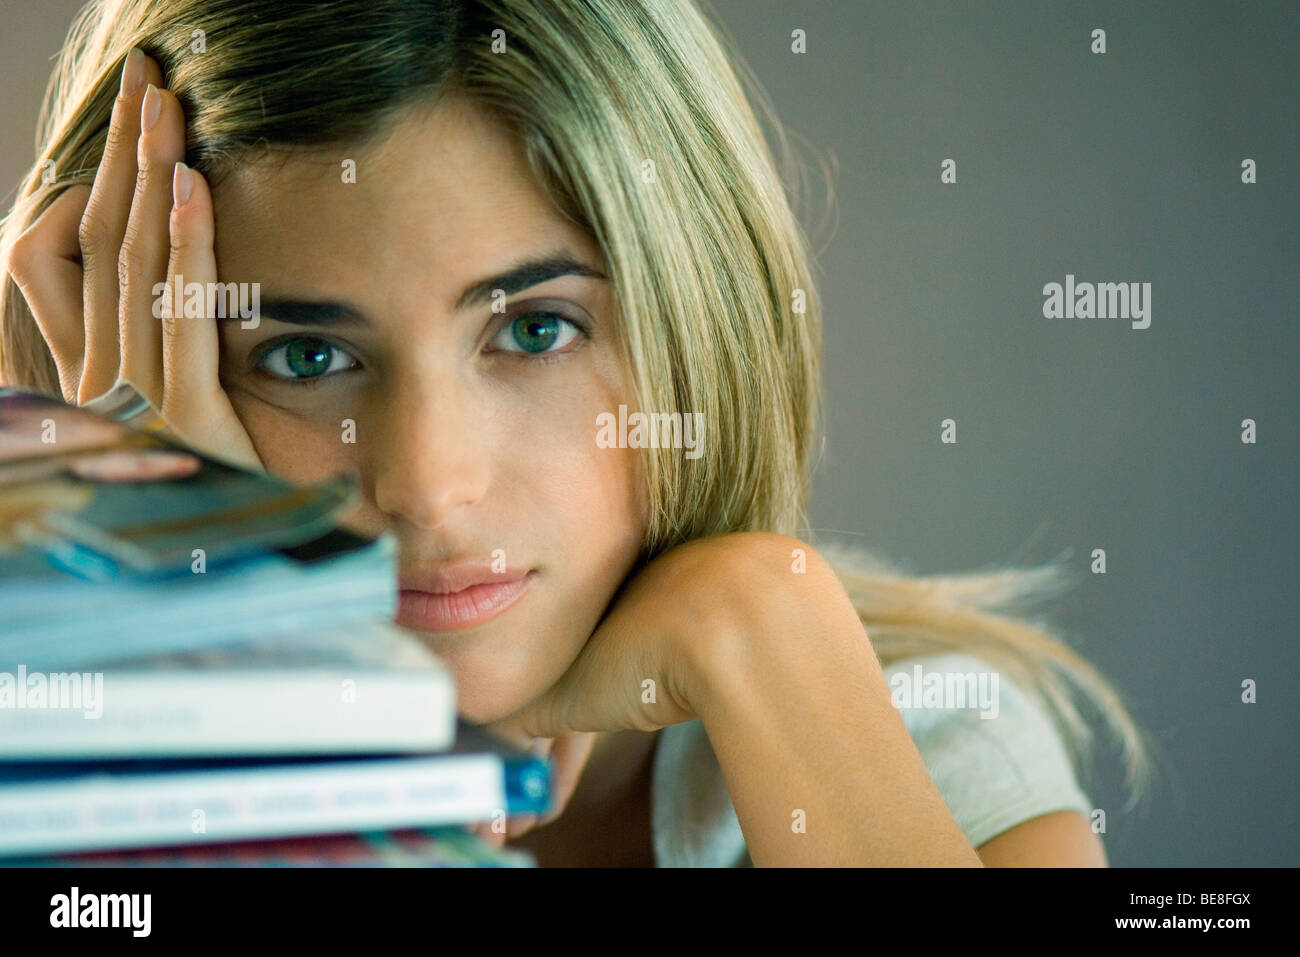 College student taking break from studies - Stock Image